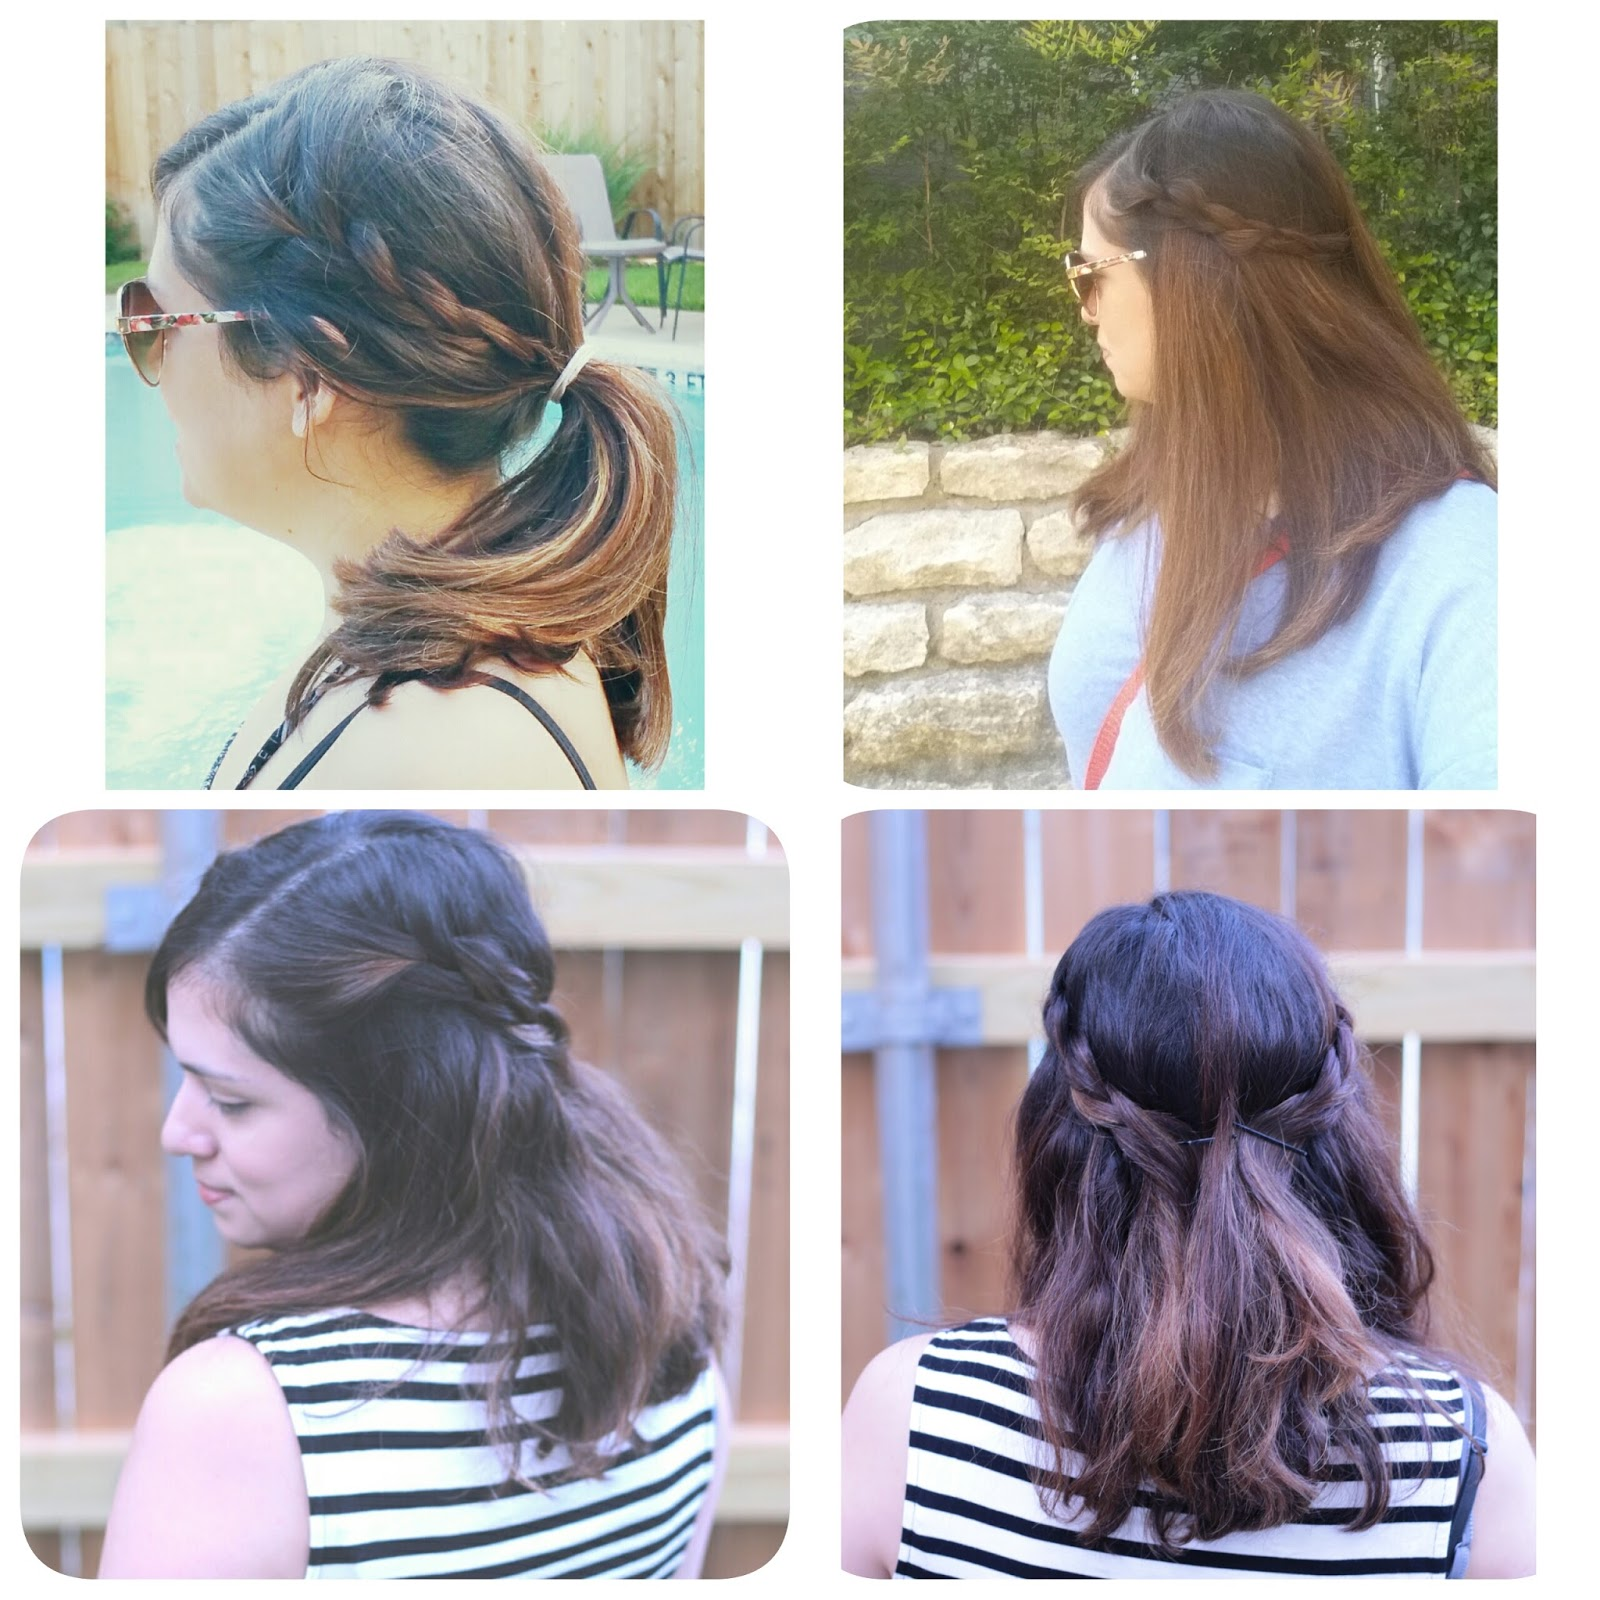 Strange Fashion For The Everyday Woman Simple And Cute Hairstyles Short Hairstyles Gunalazisus